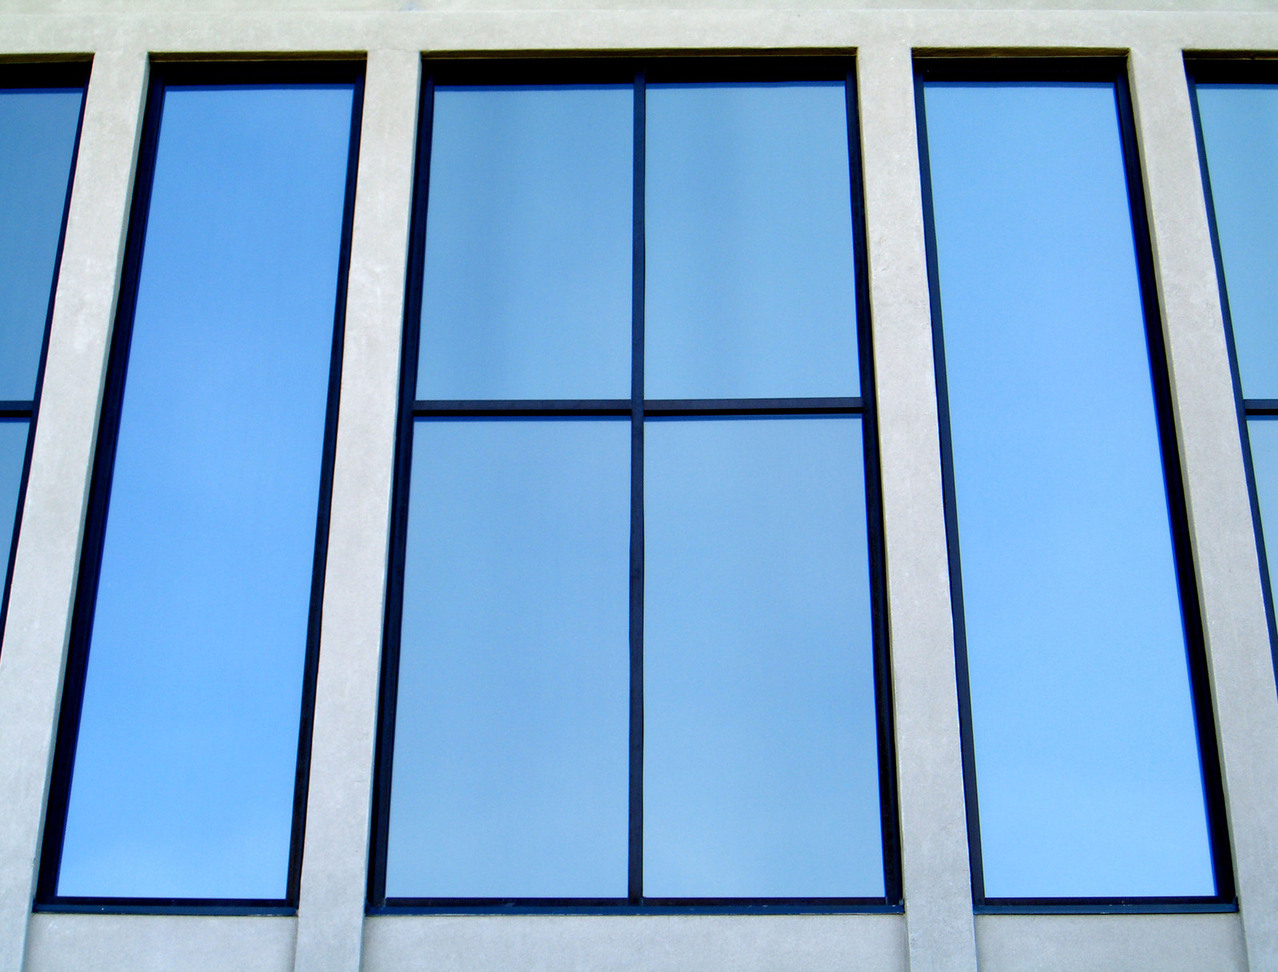 Commercial safety glass windows